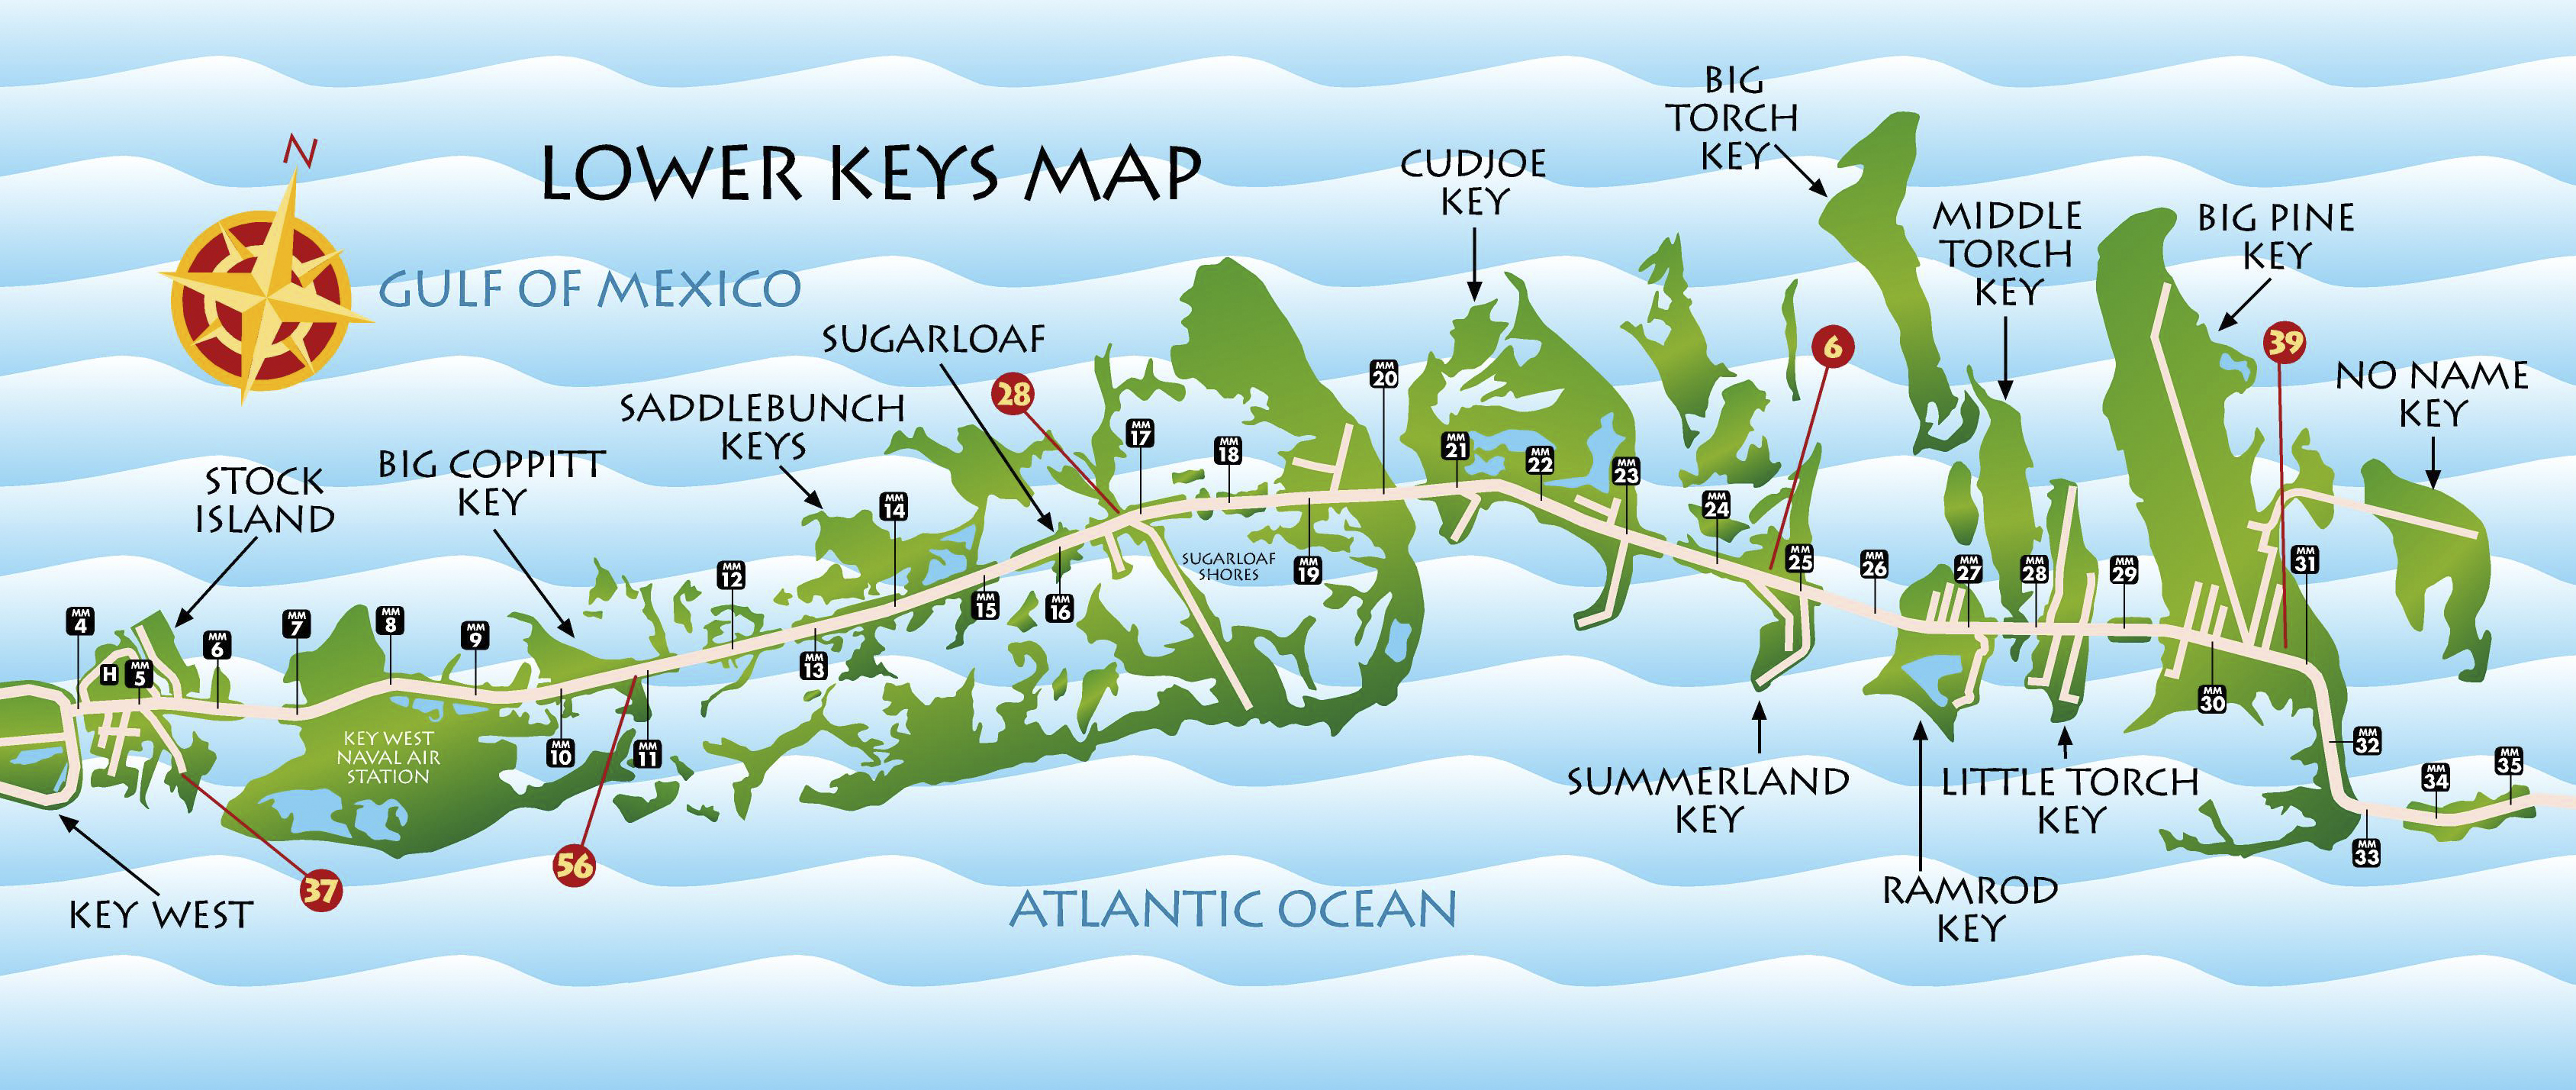 Florida Keys Maps.Fl Keys Maps Key West Florida Keys Discount Coupons